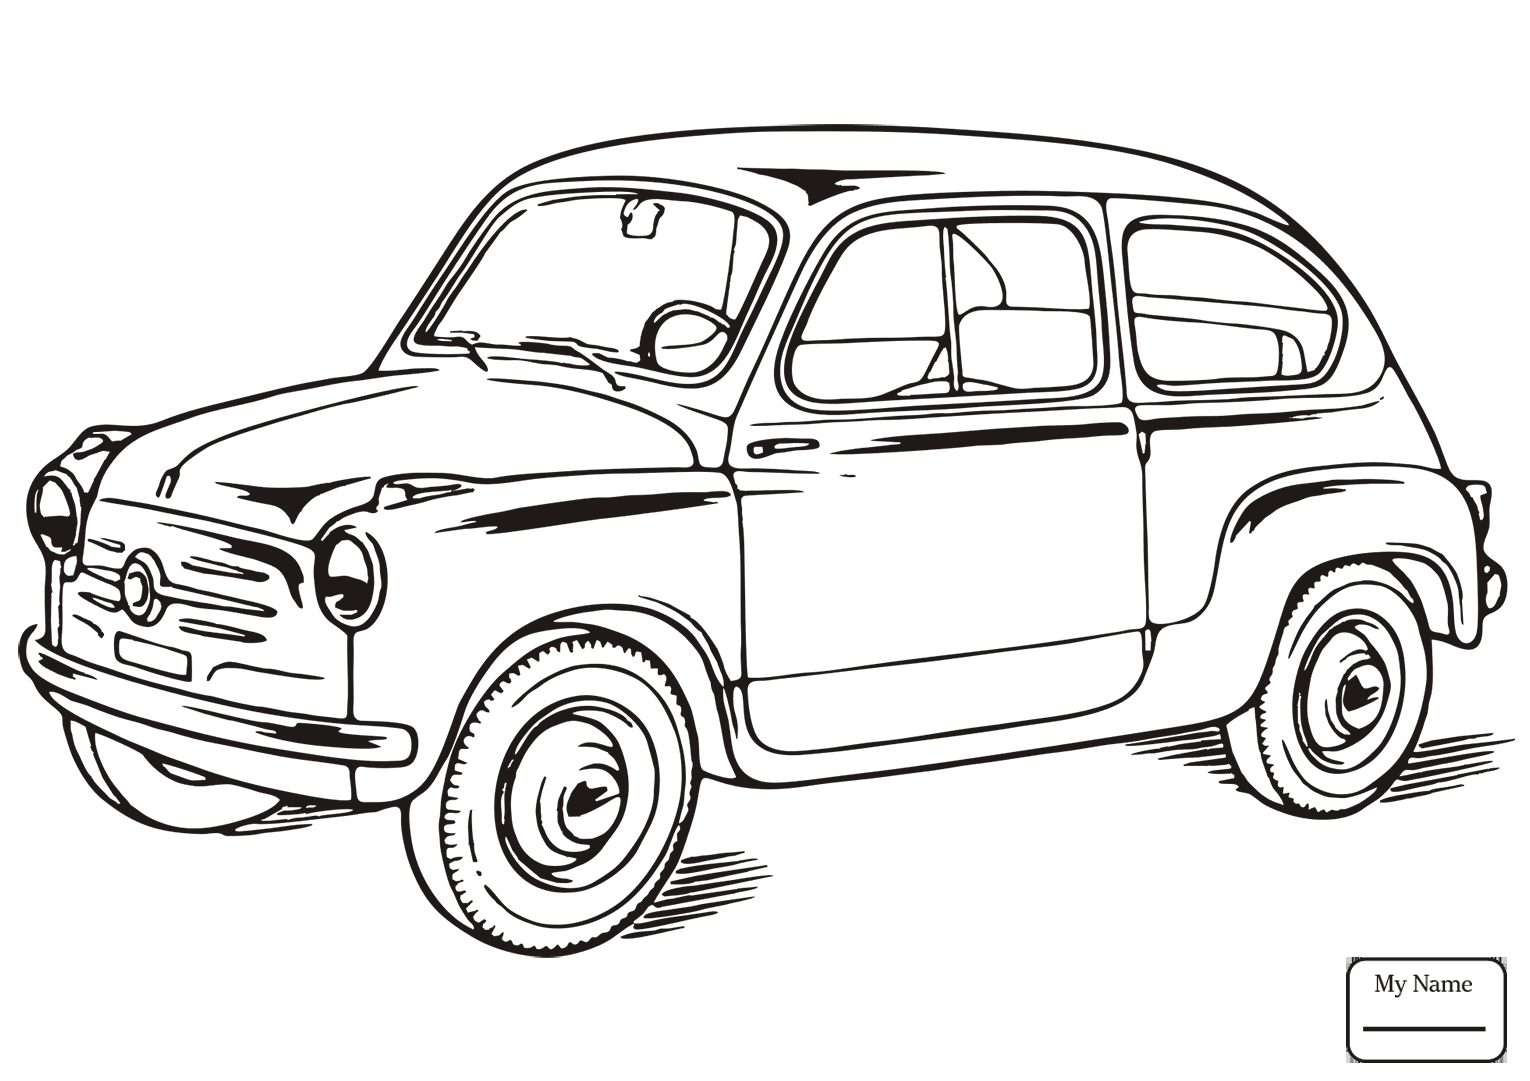 old fashioned car coloring pages old fashion car coloring pages hellokidscom fashioned coloring old pages car